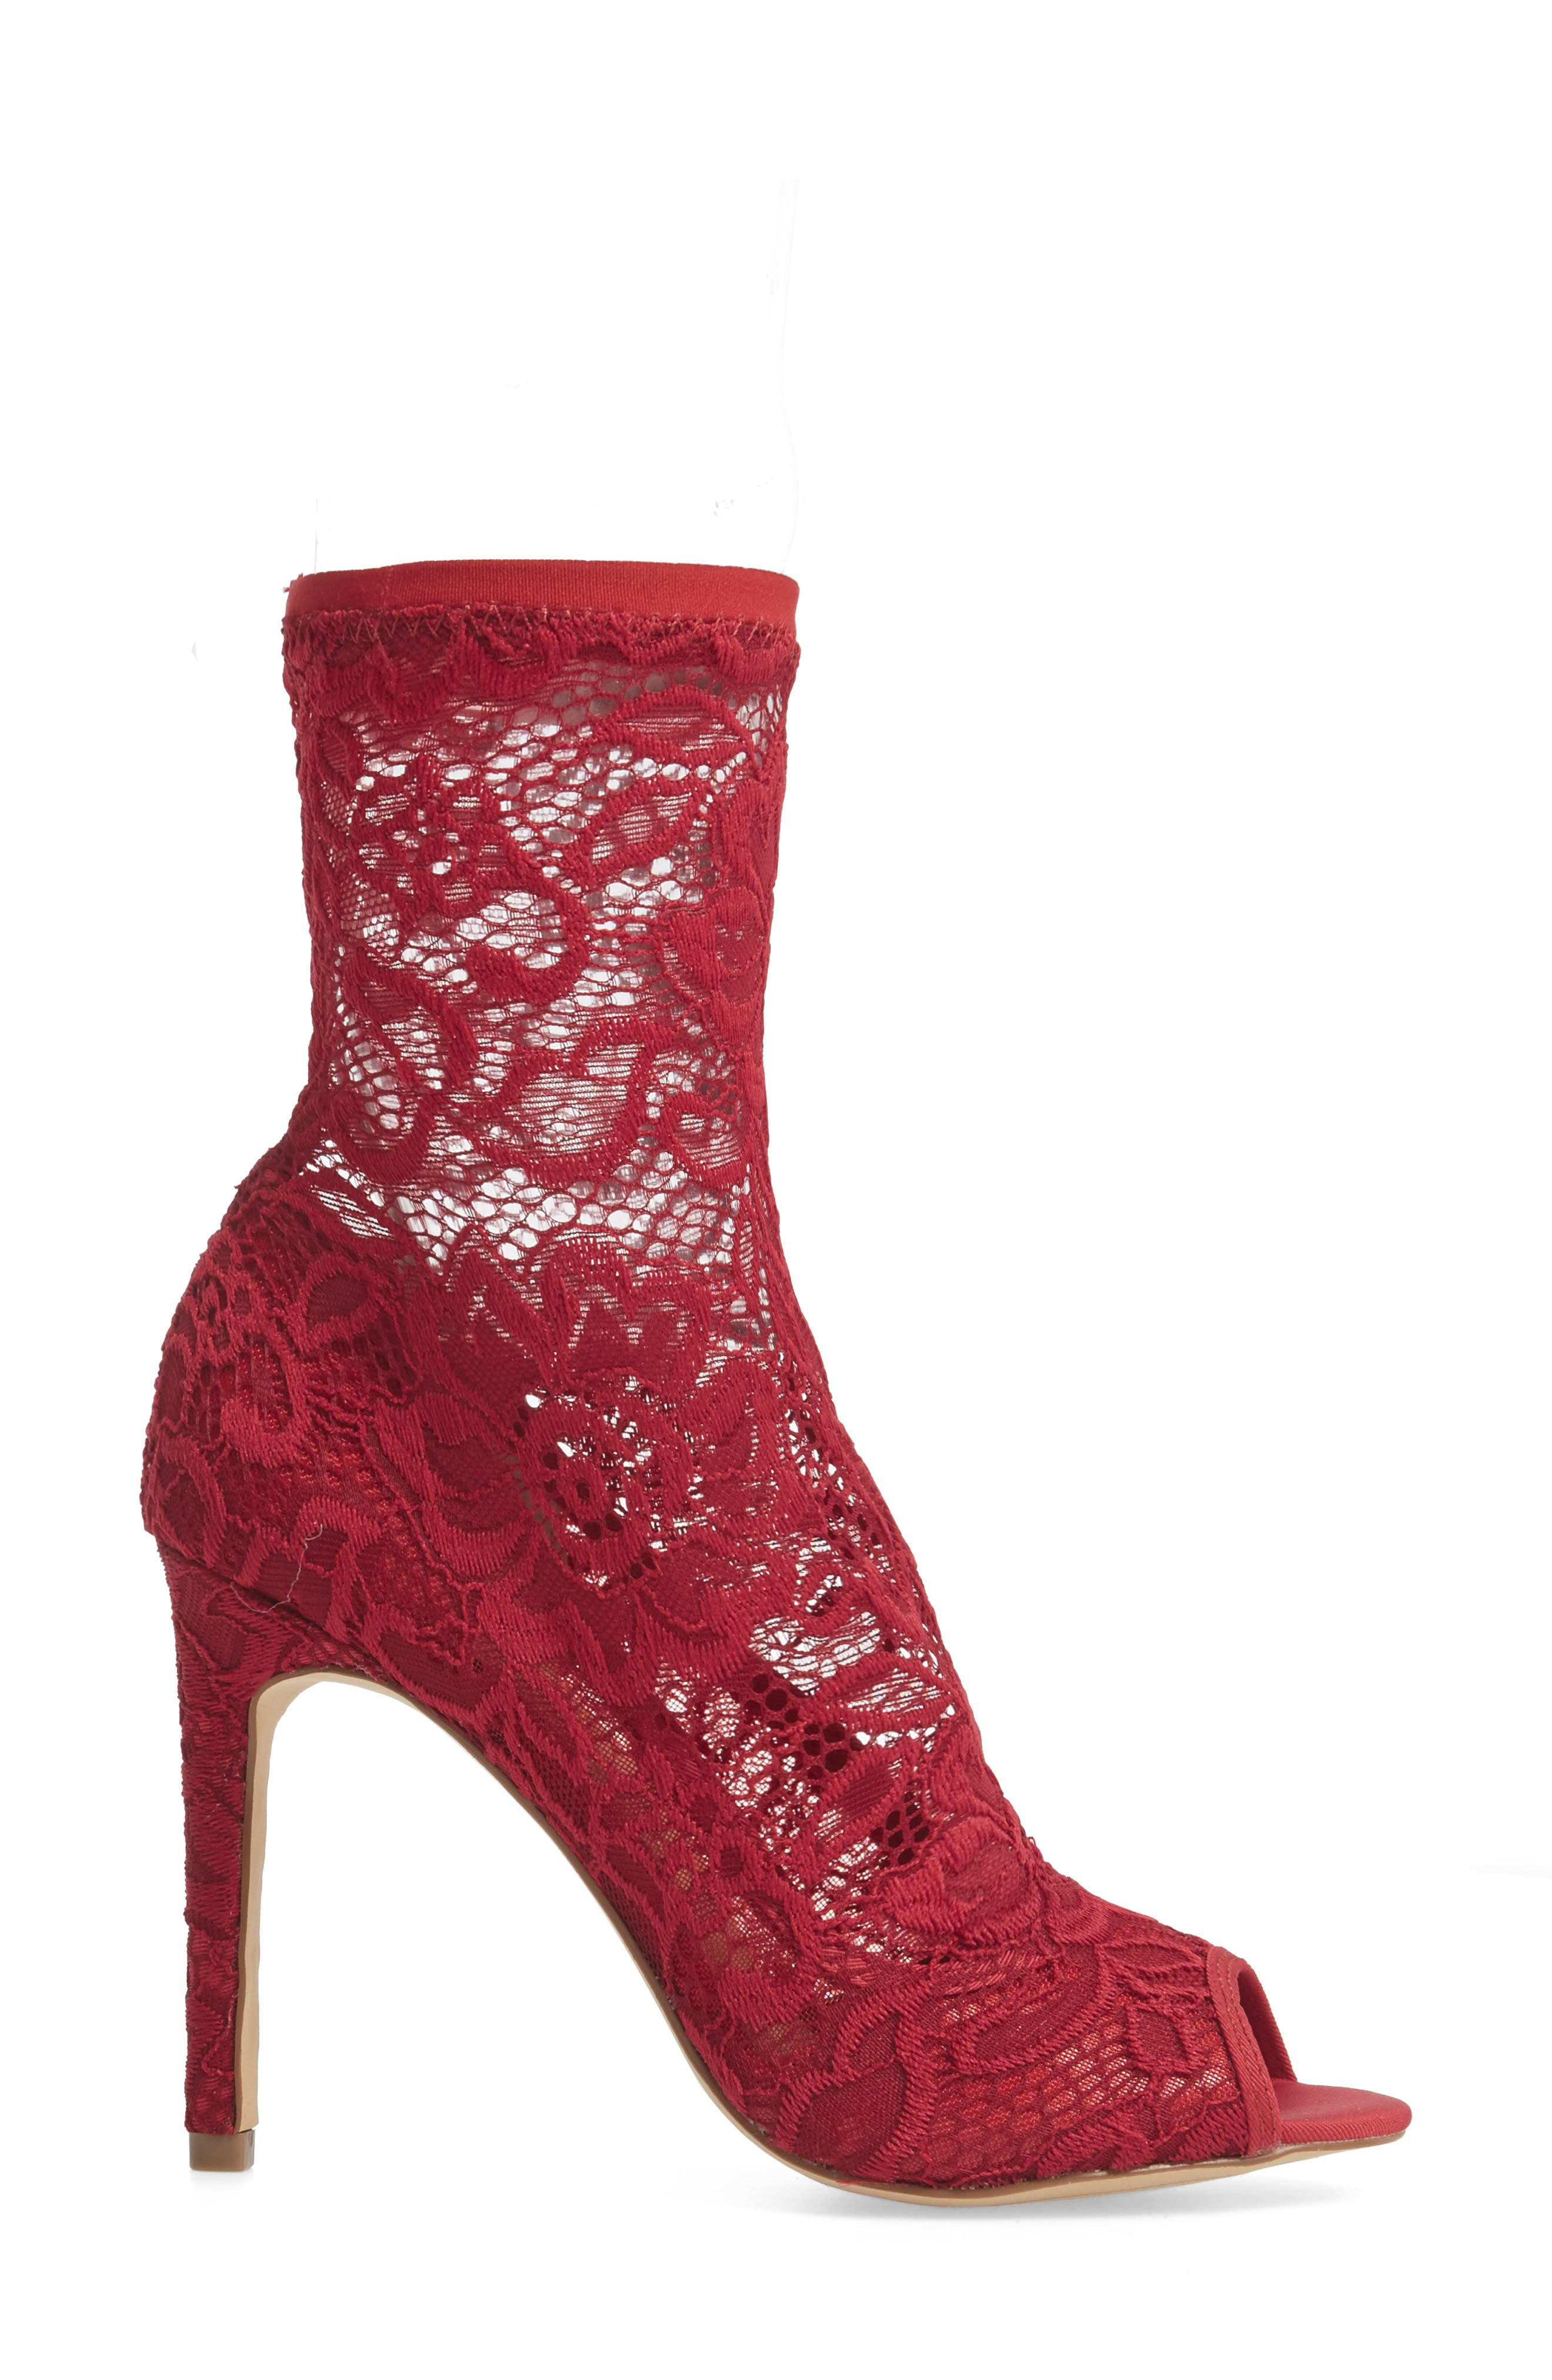 Imaginary Lace Sock Bootie,                             Alternate thumbnail 3, color,                             Scarlet Fabric